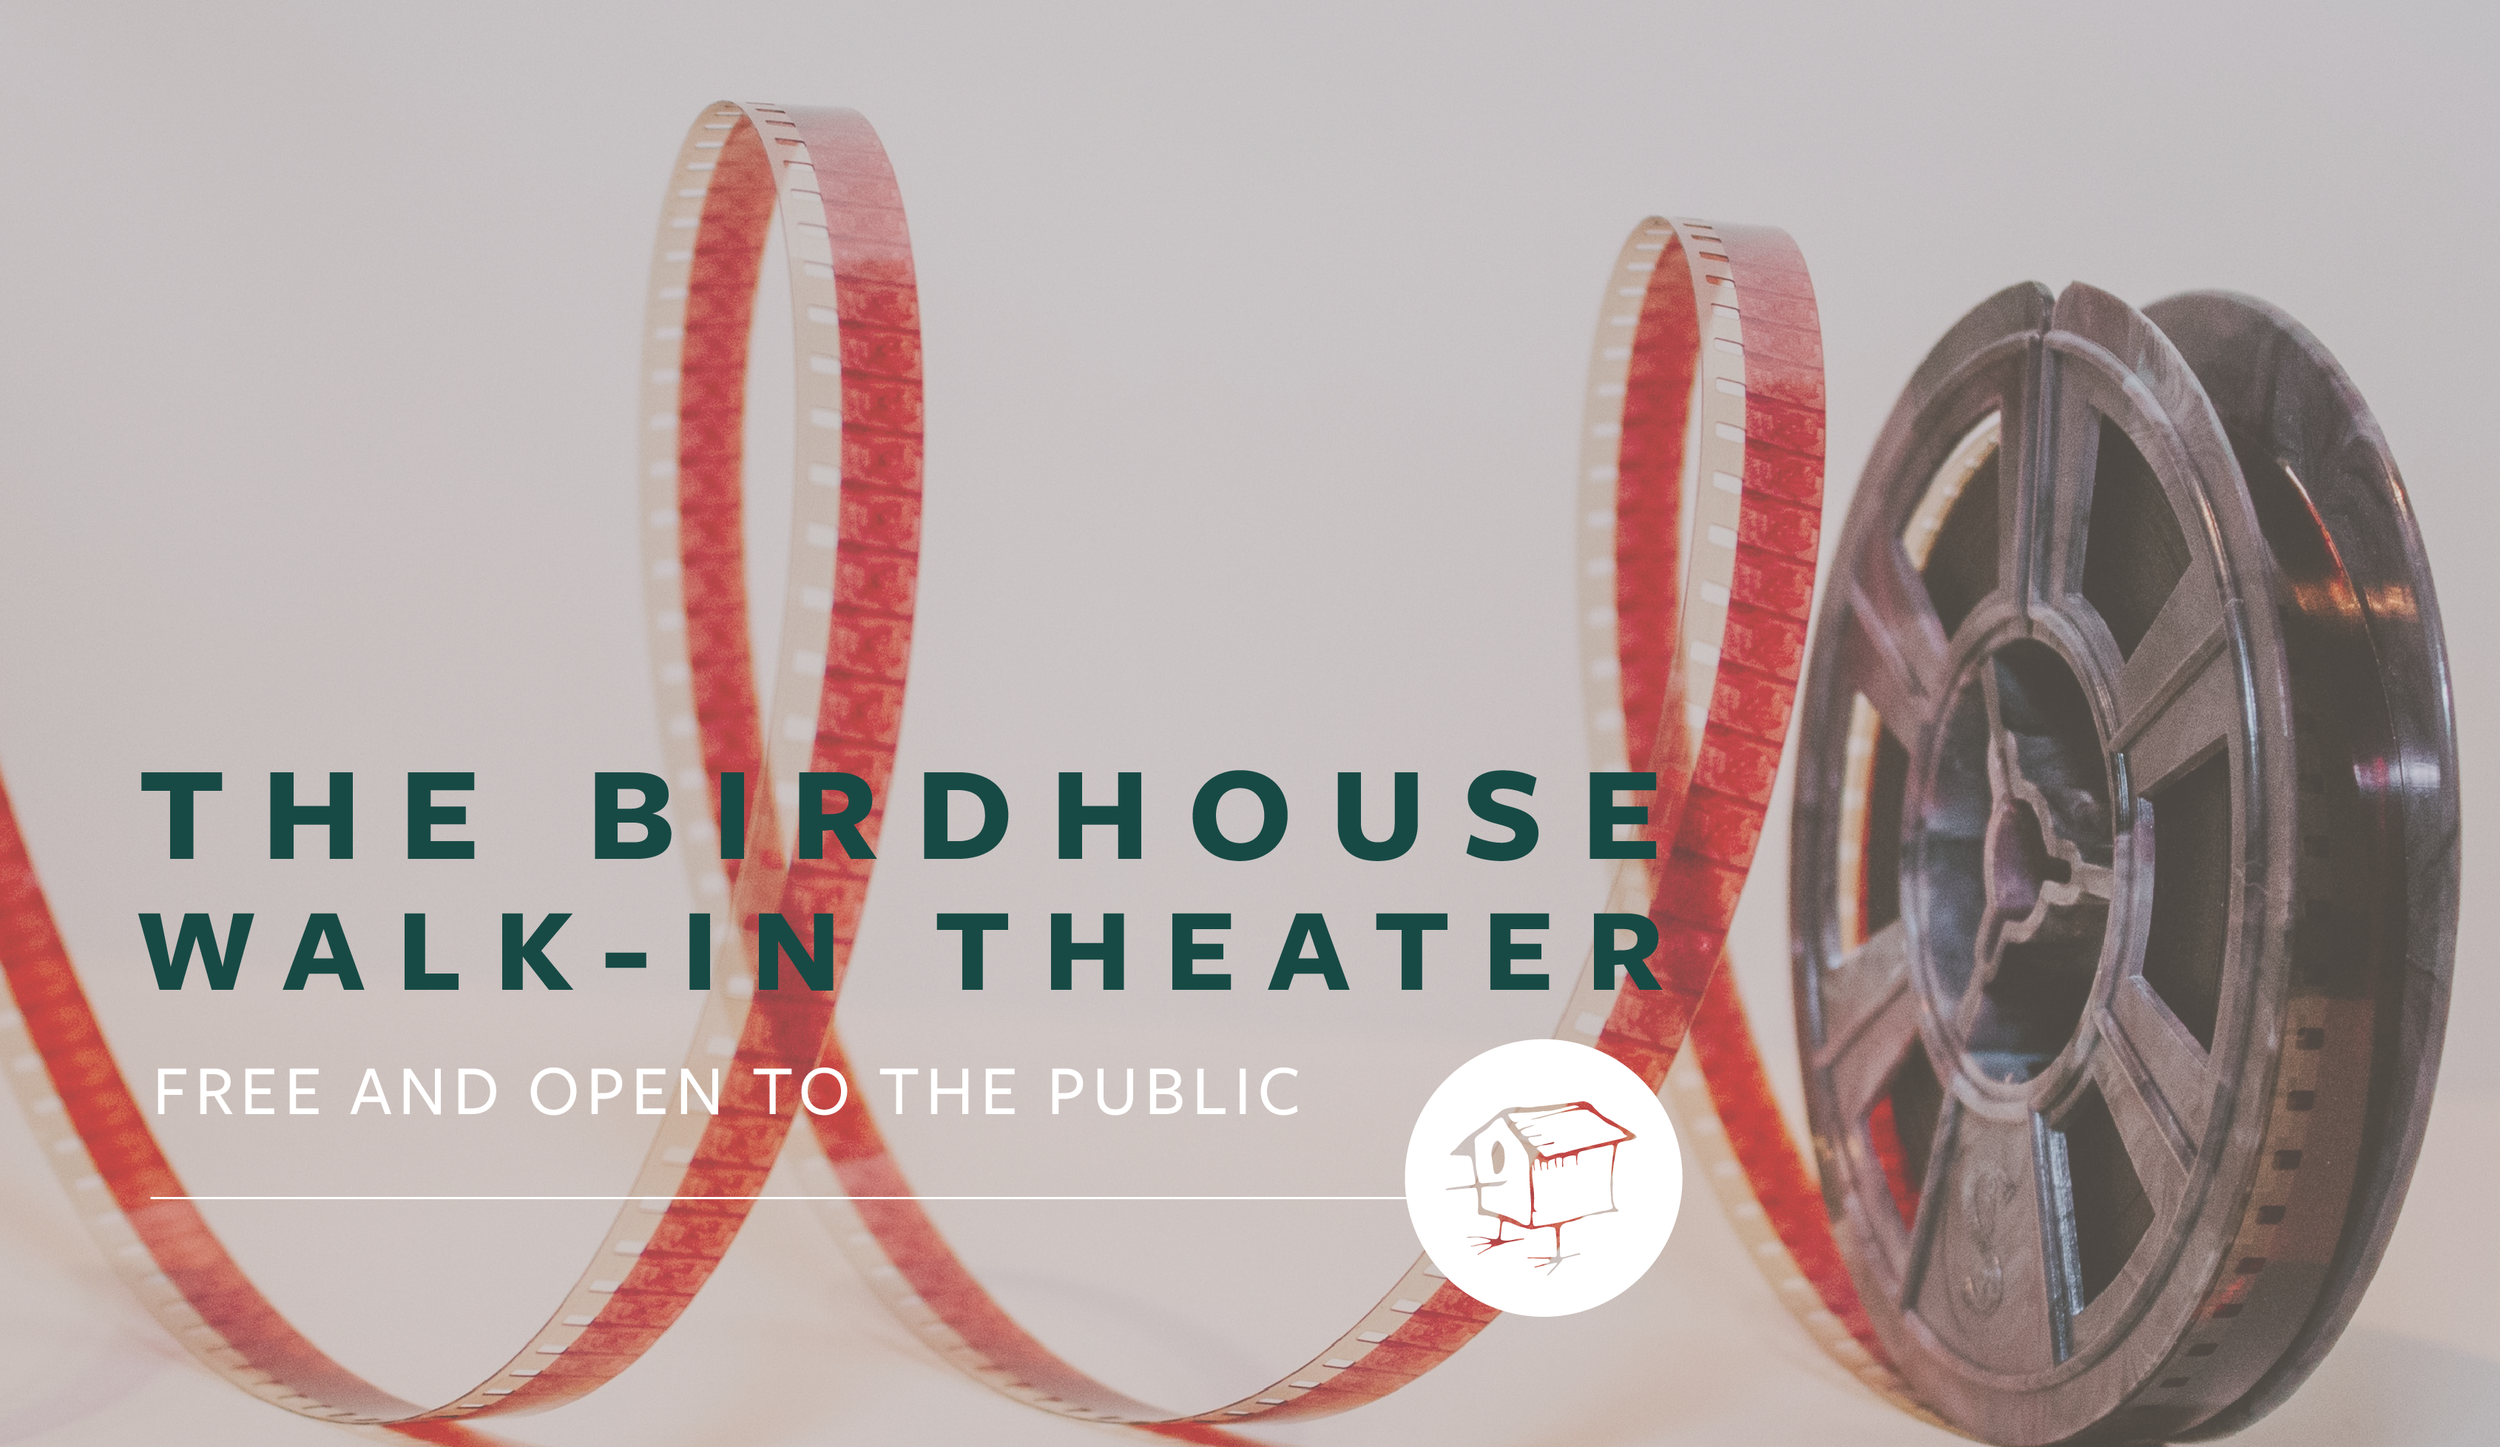 The Birdhouse Walk-In Theater